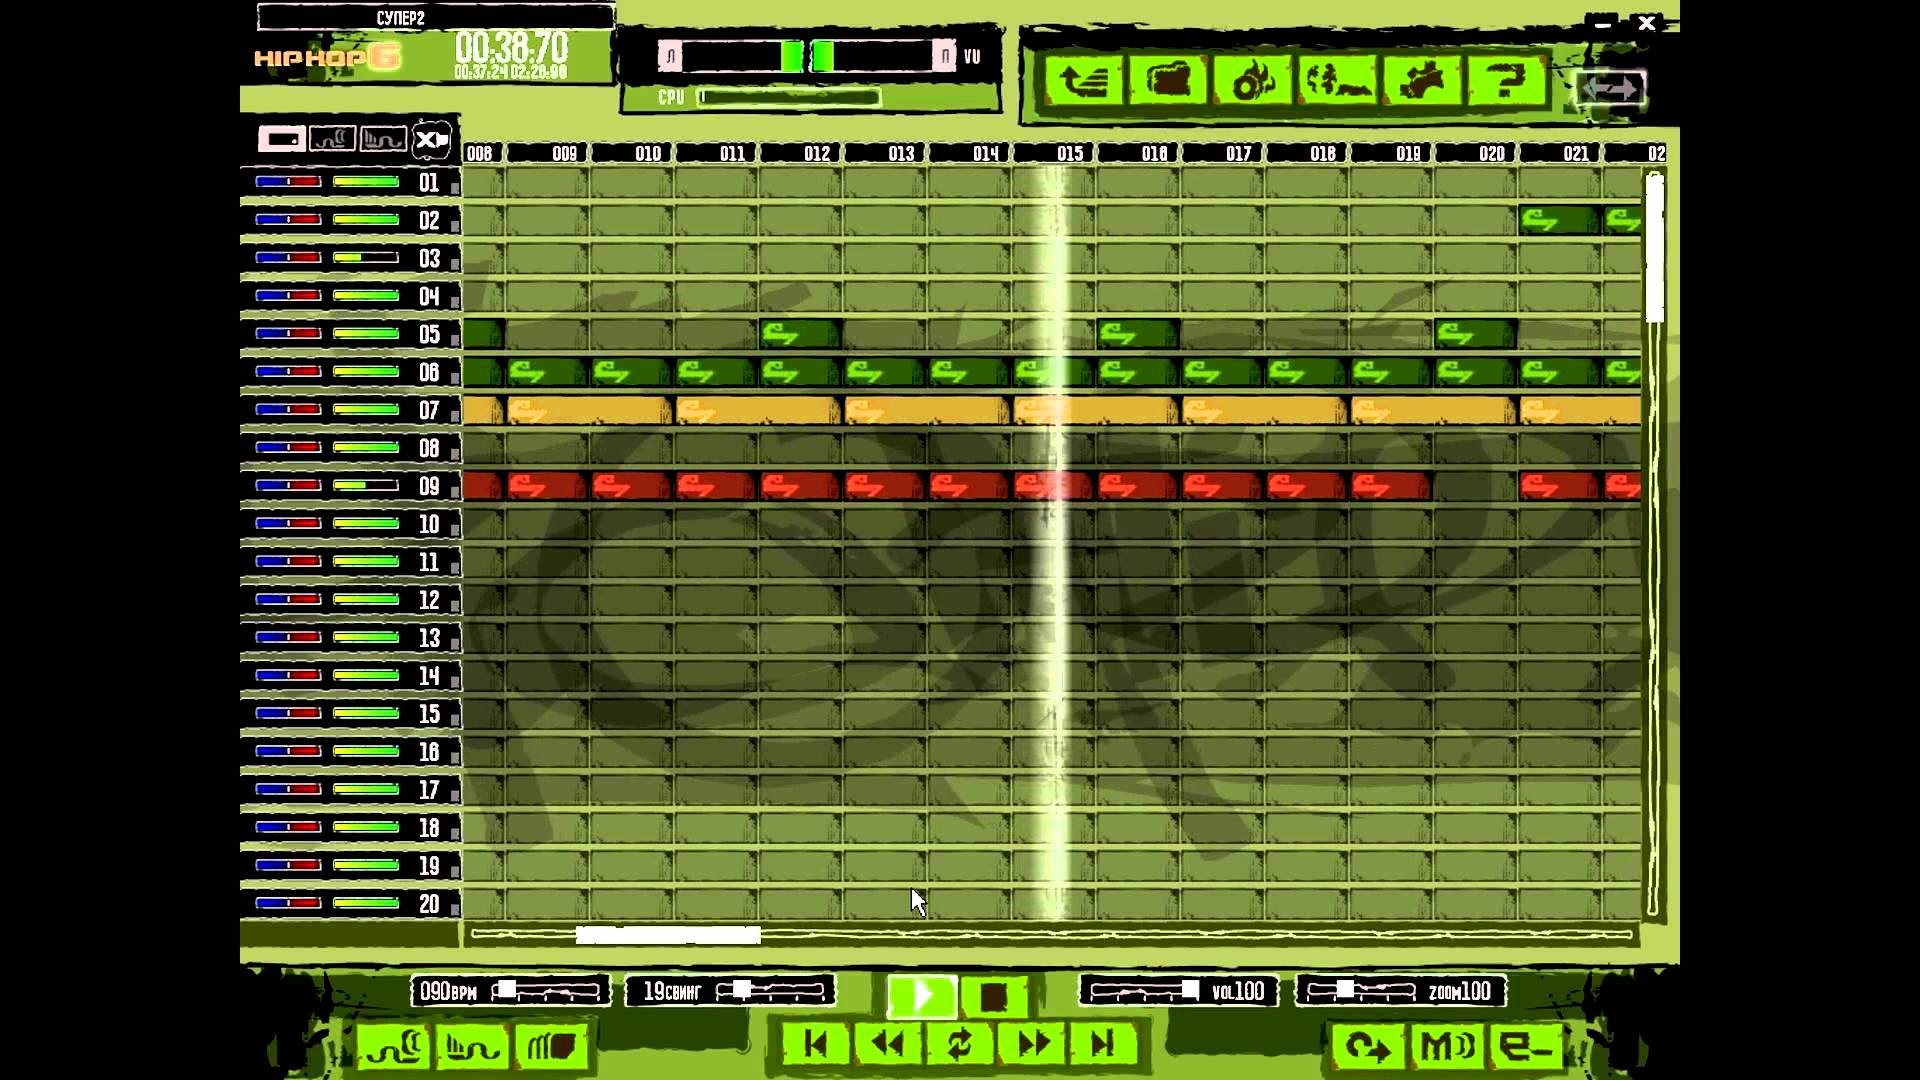 Download Hip-Hop Ejay 6 | Free Software Cracked available ...